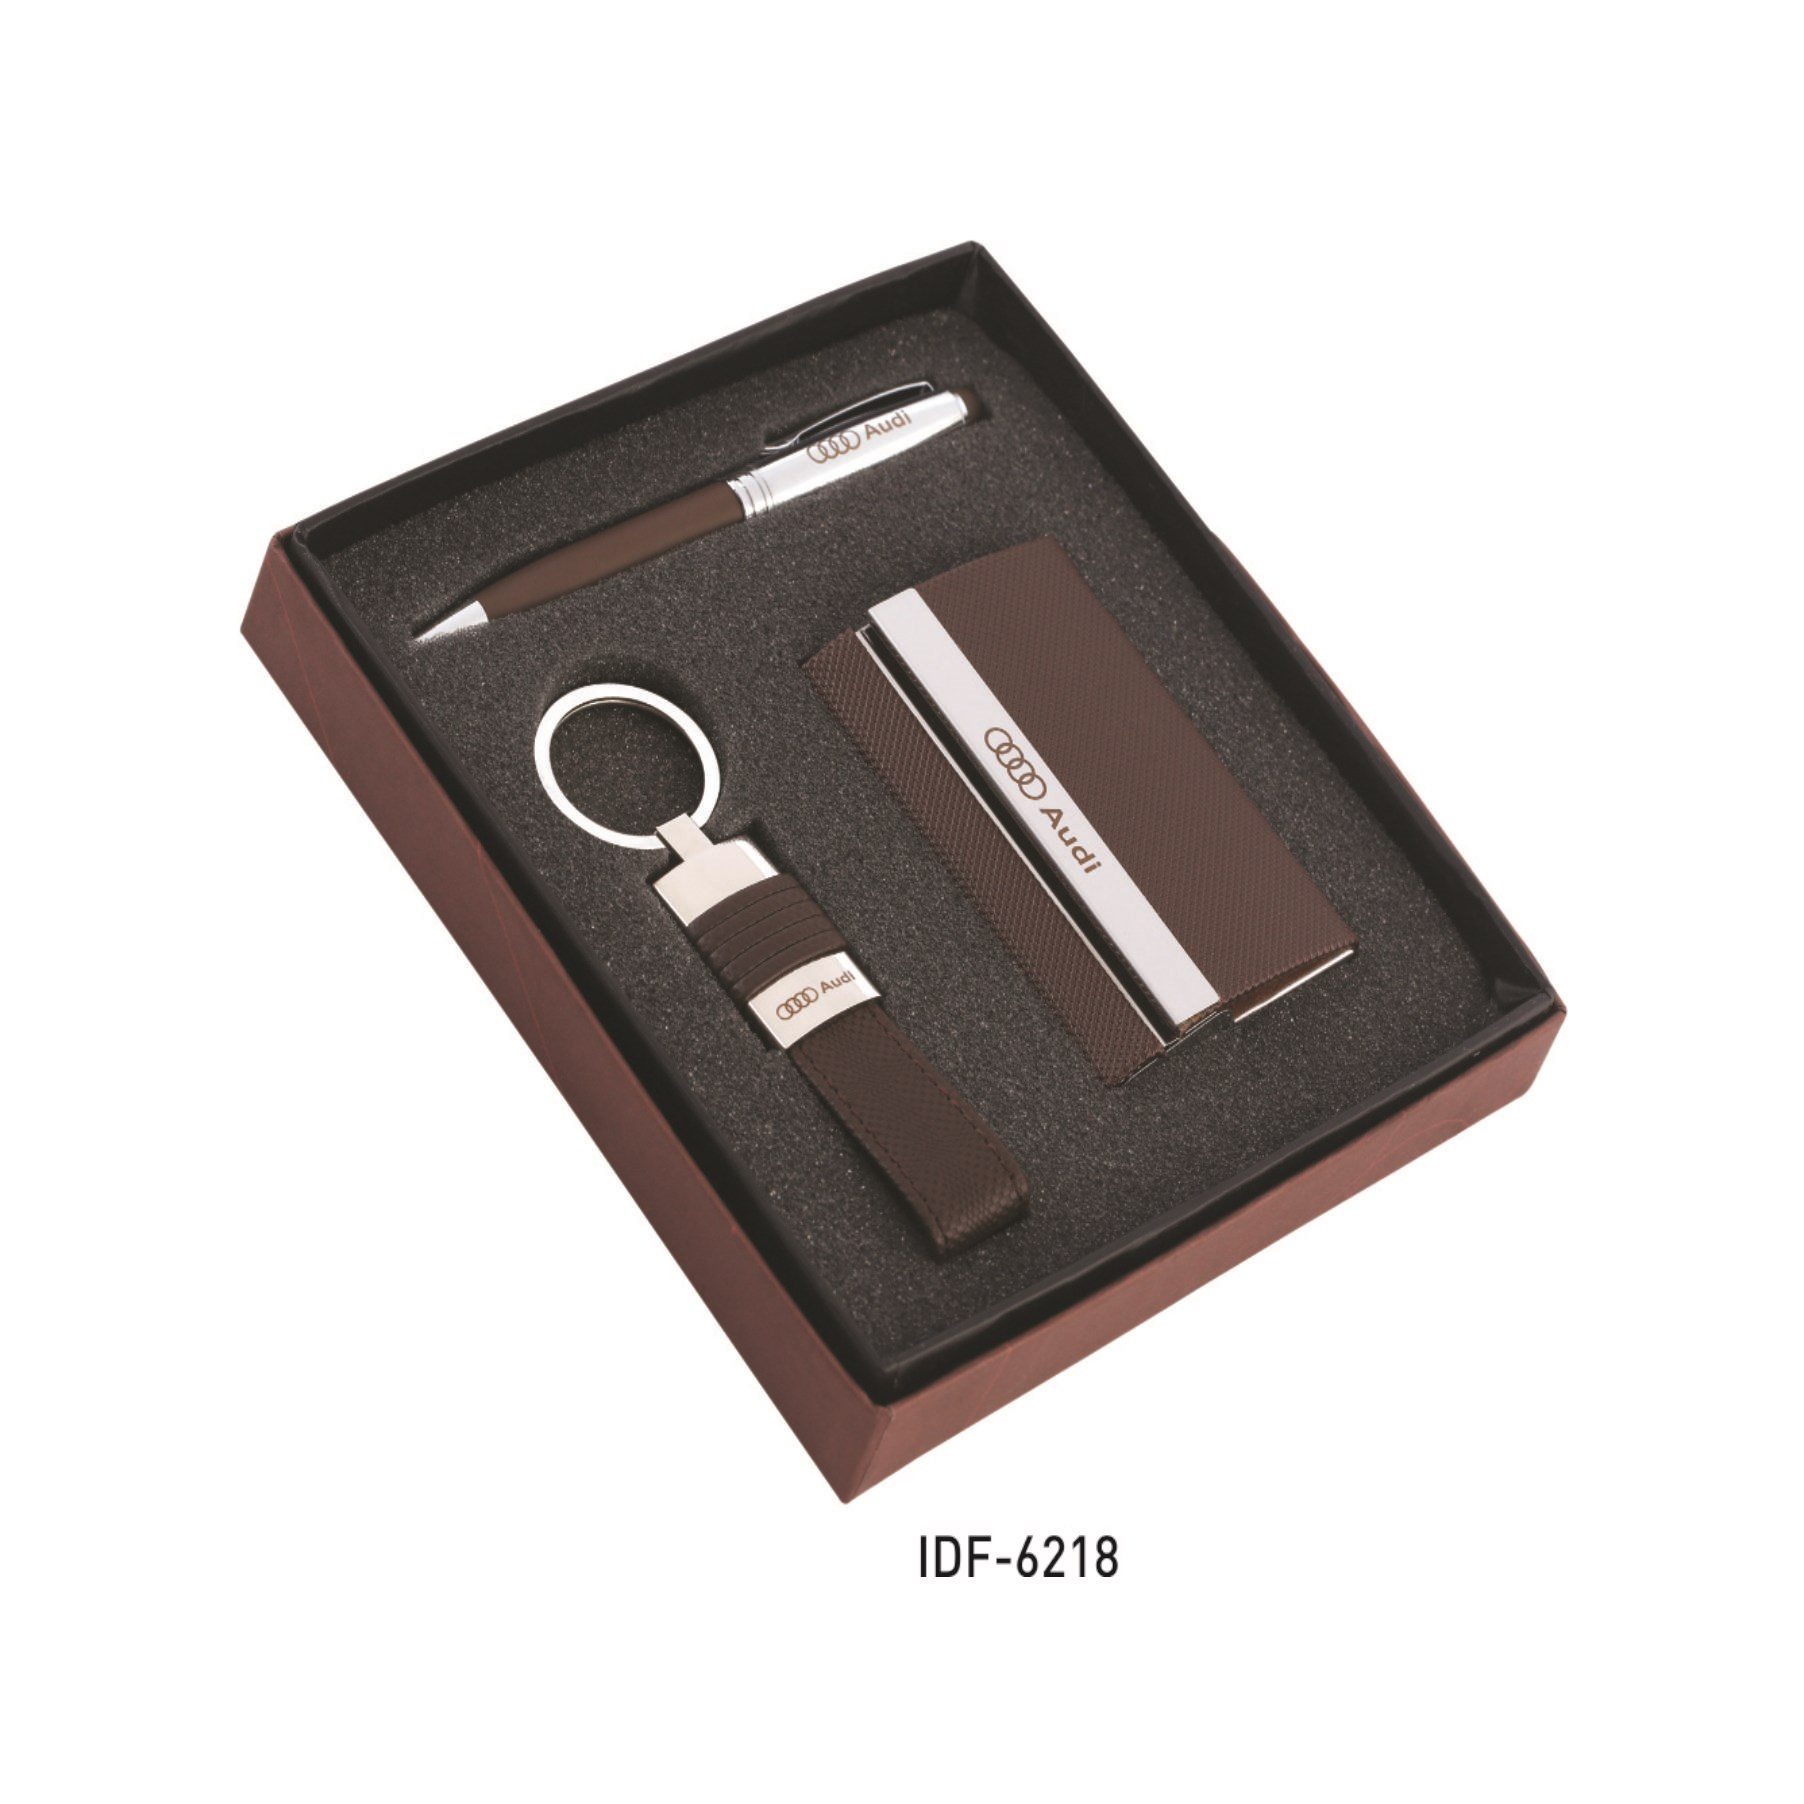 Gift Set Supplier In Coimbatore . gift set contains a Key chain, pen and a card holder, it can be customised your company logo or individual persons name. it is packed in a beautiful box packing.  Executive sets Personalised card holders pen with card holders